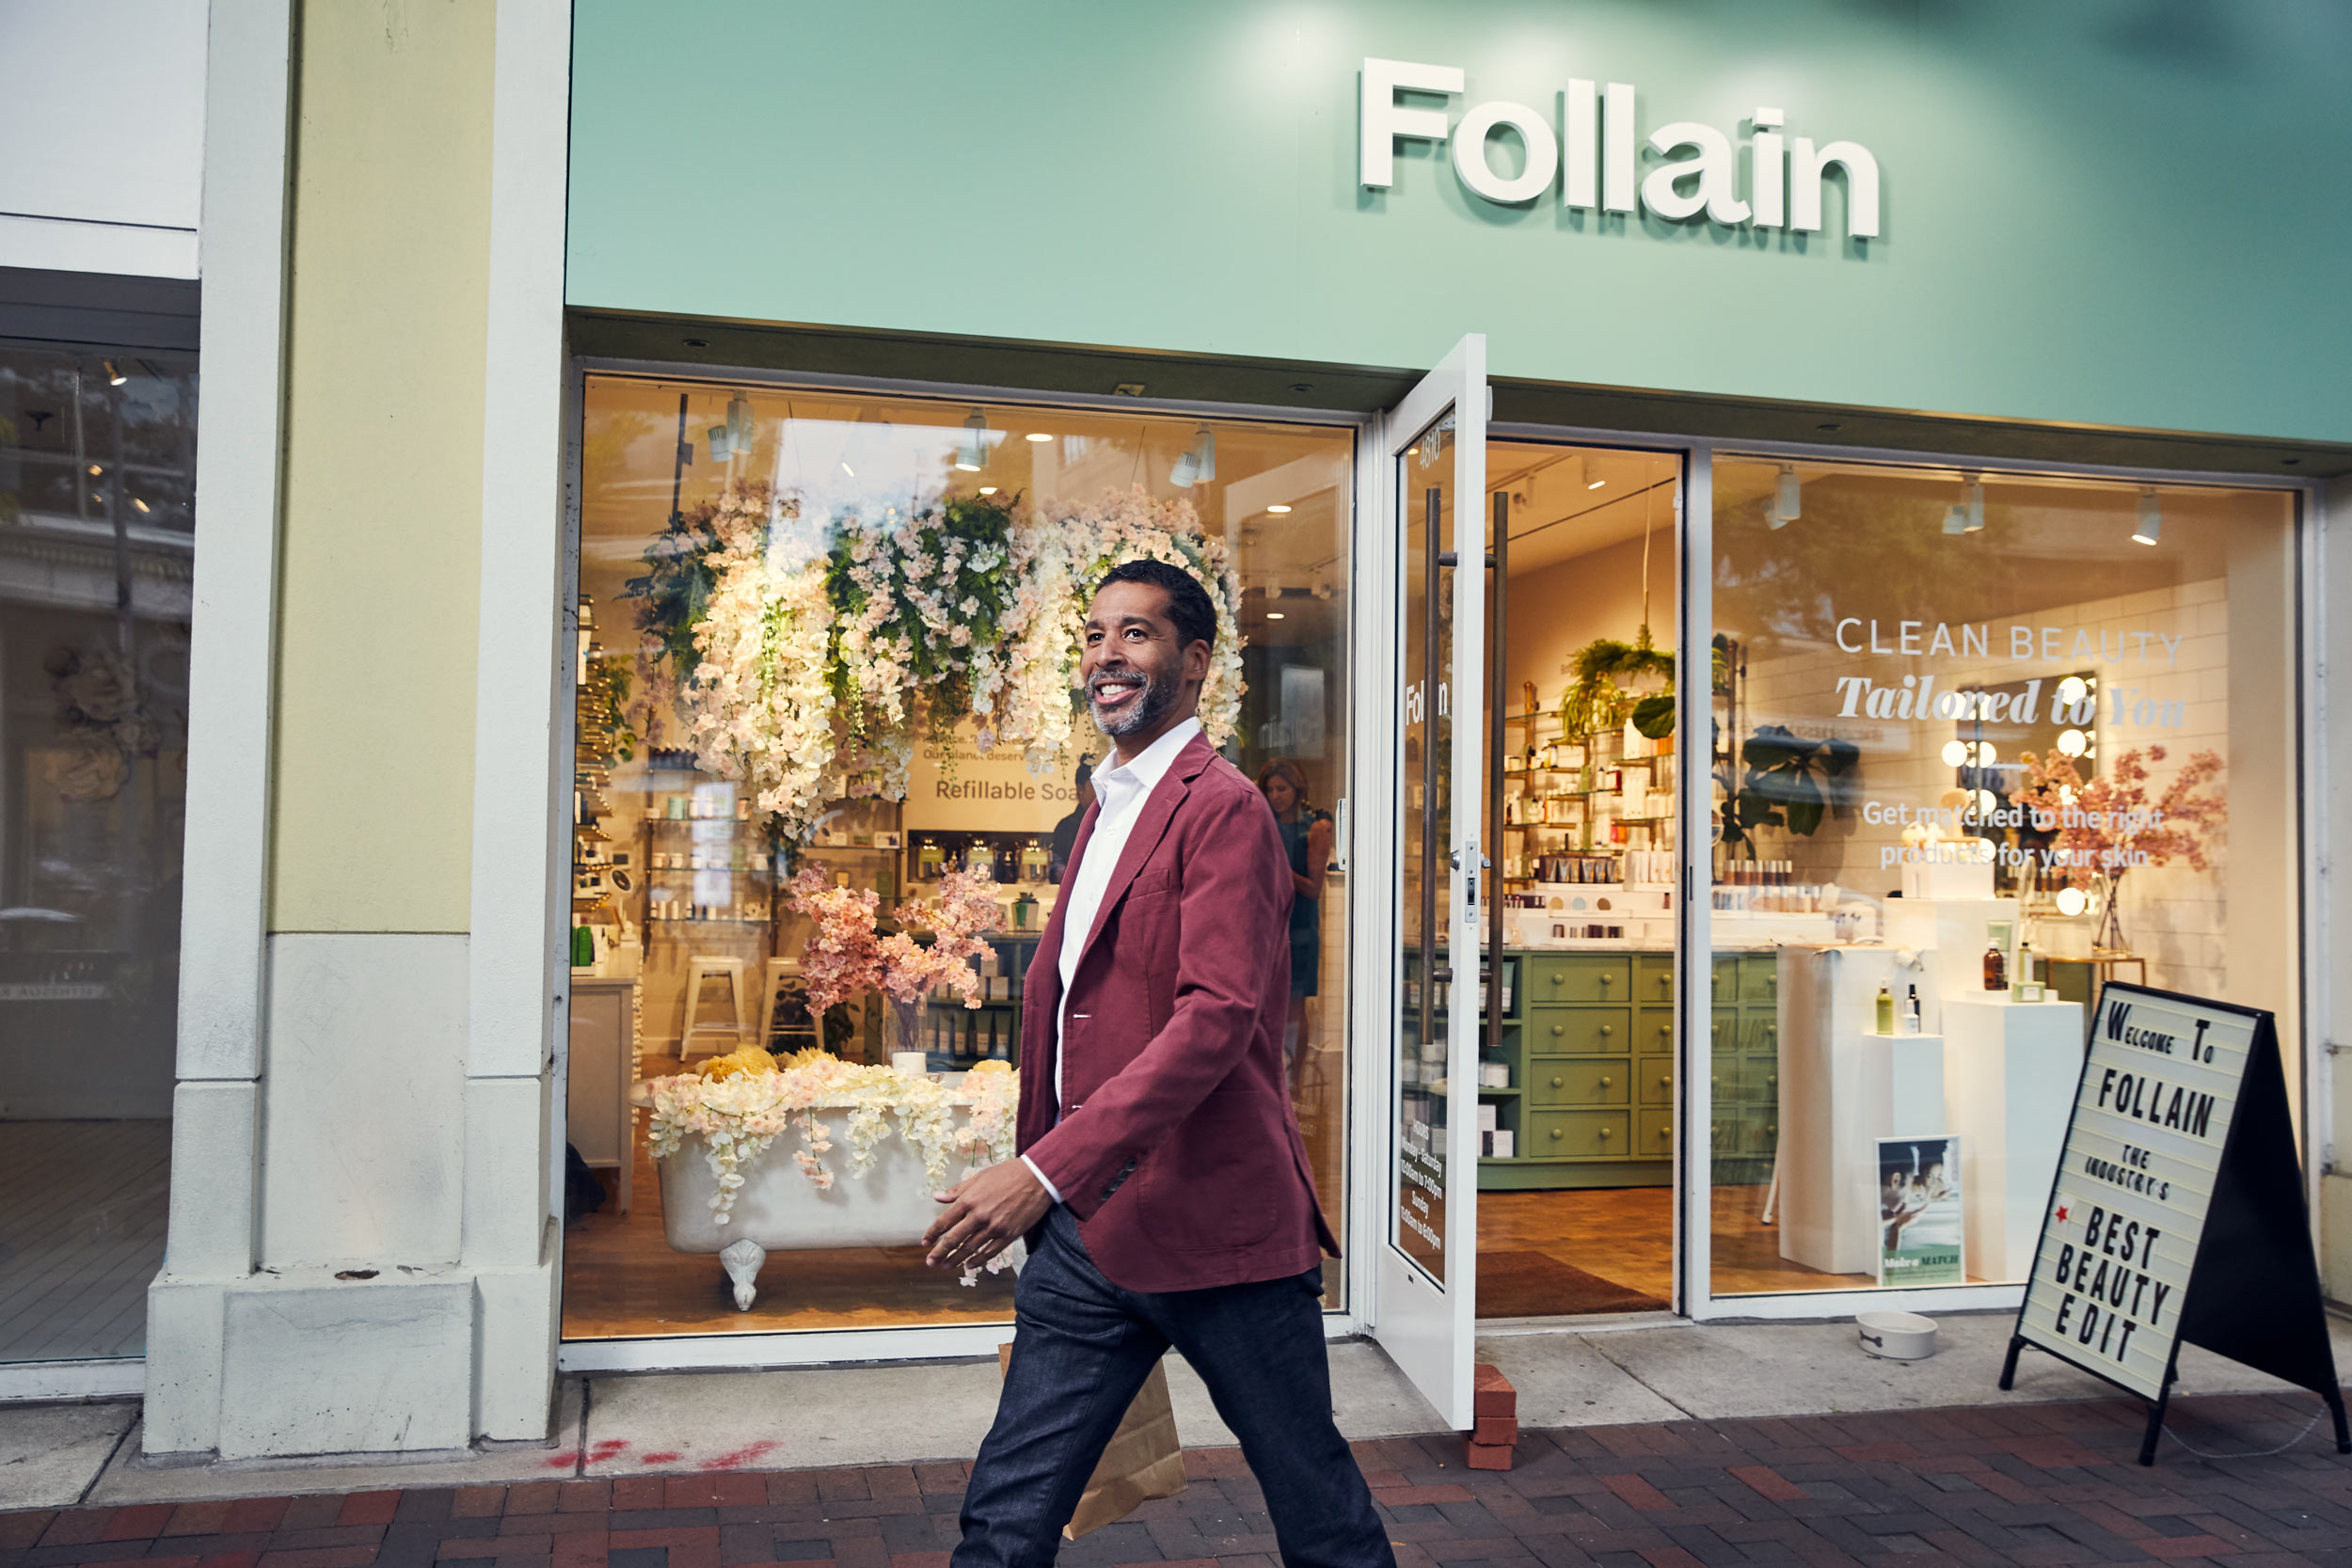 affluent man leaving store follain, washington dc commercial photography